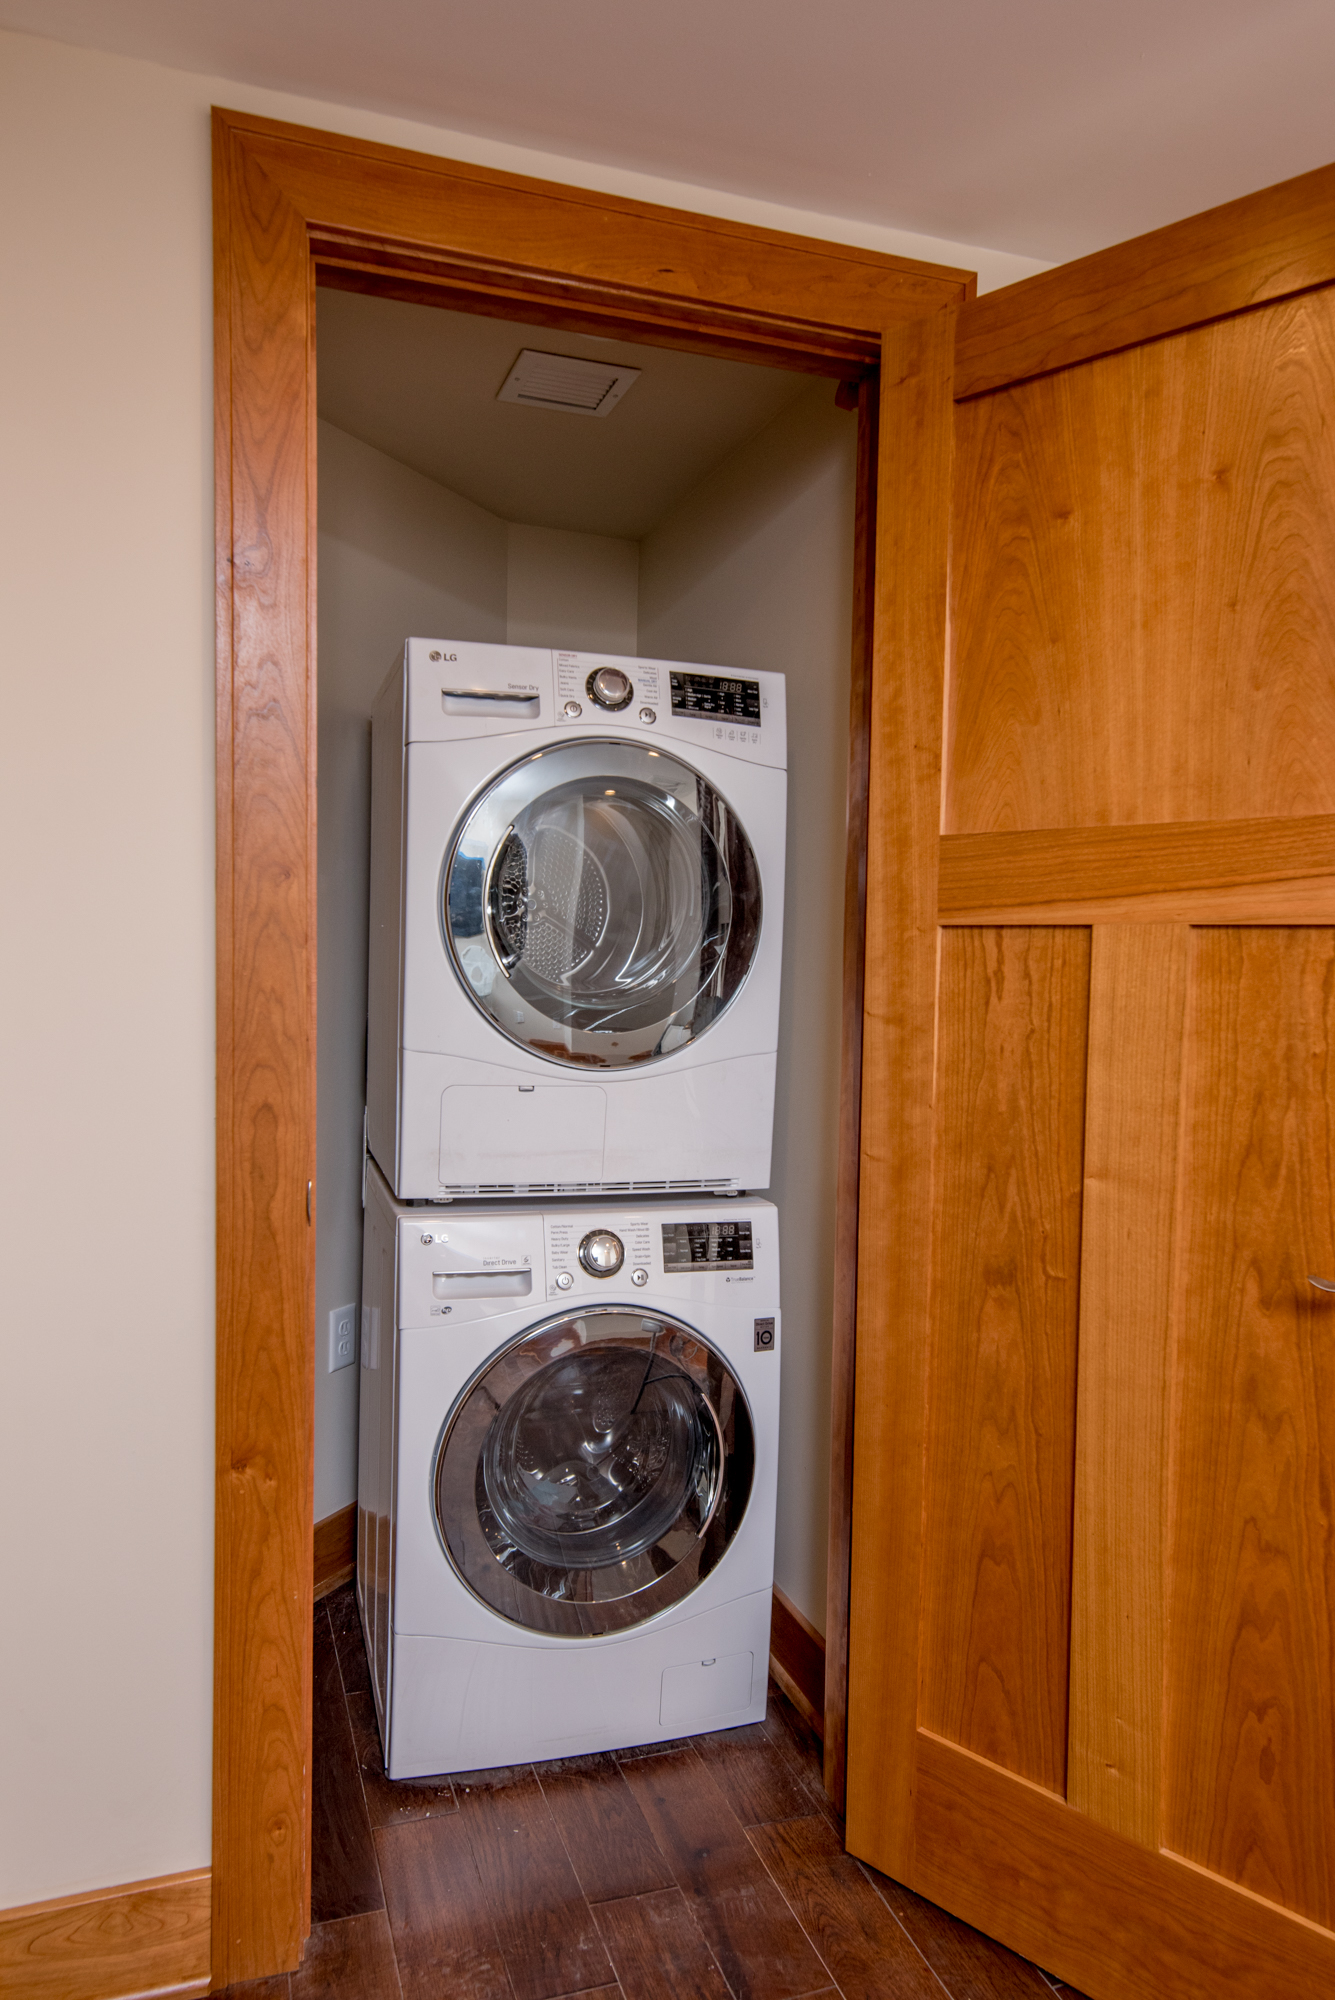 All apartments have in-unit washer and dryer